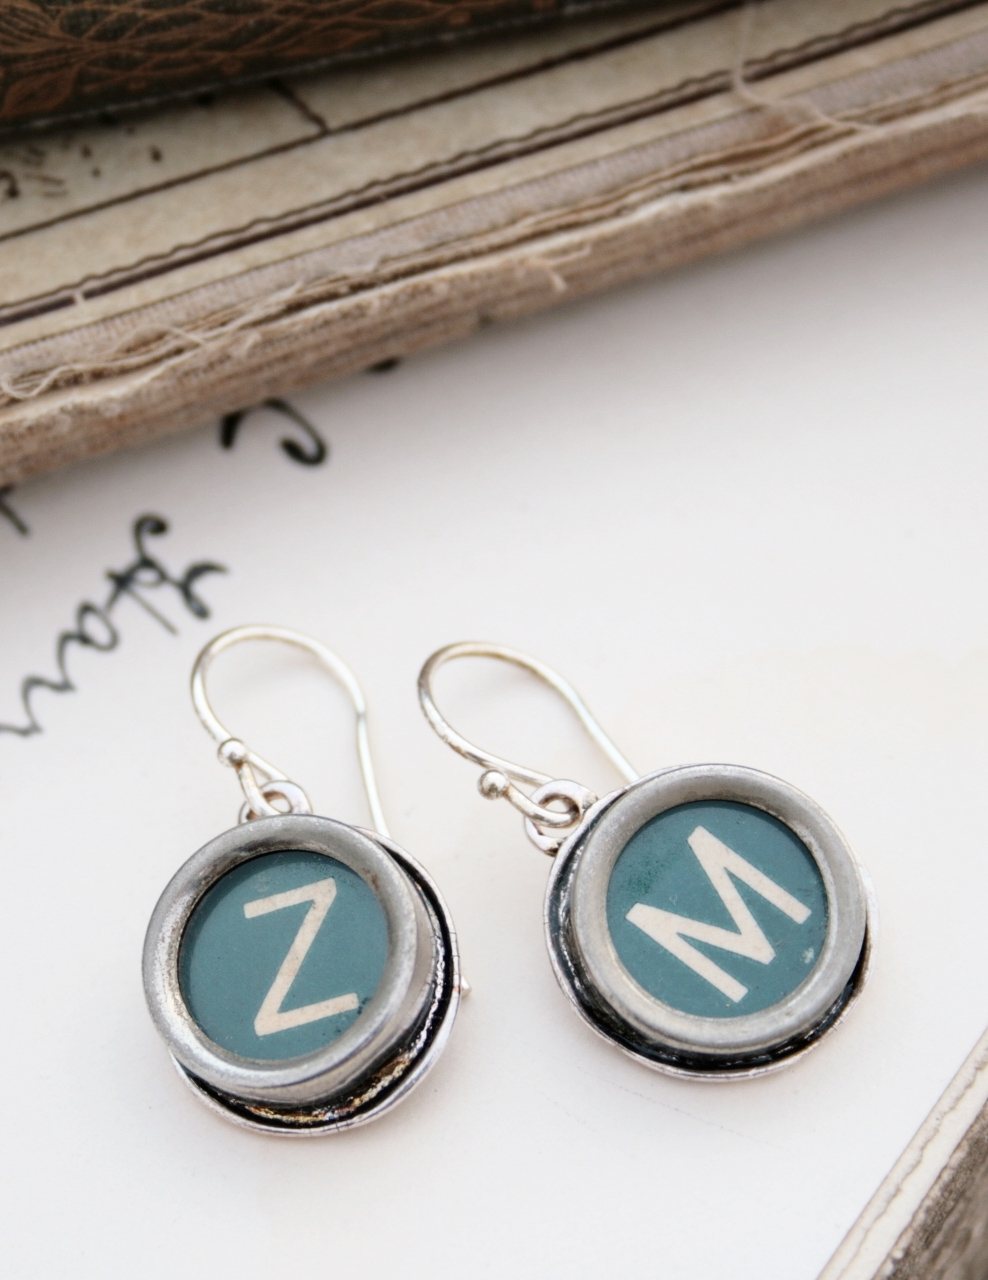 green initial earrings / statement dangling earrings made of typewriter key